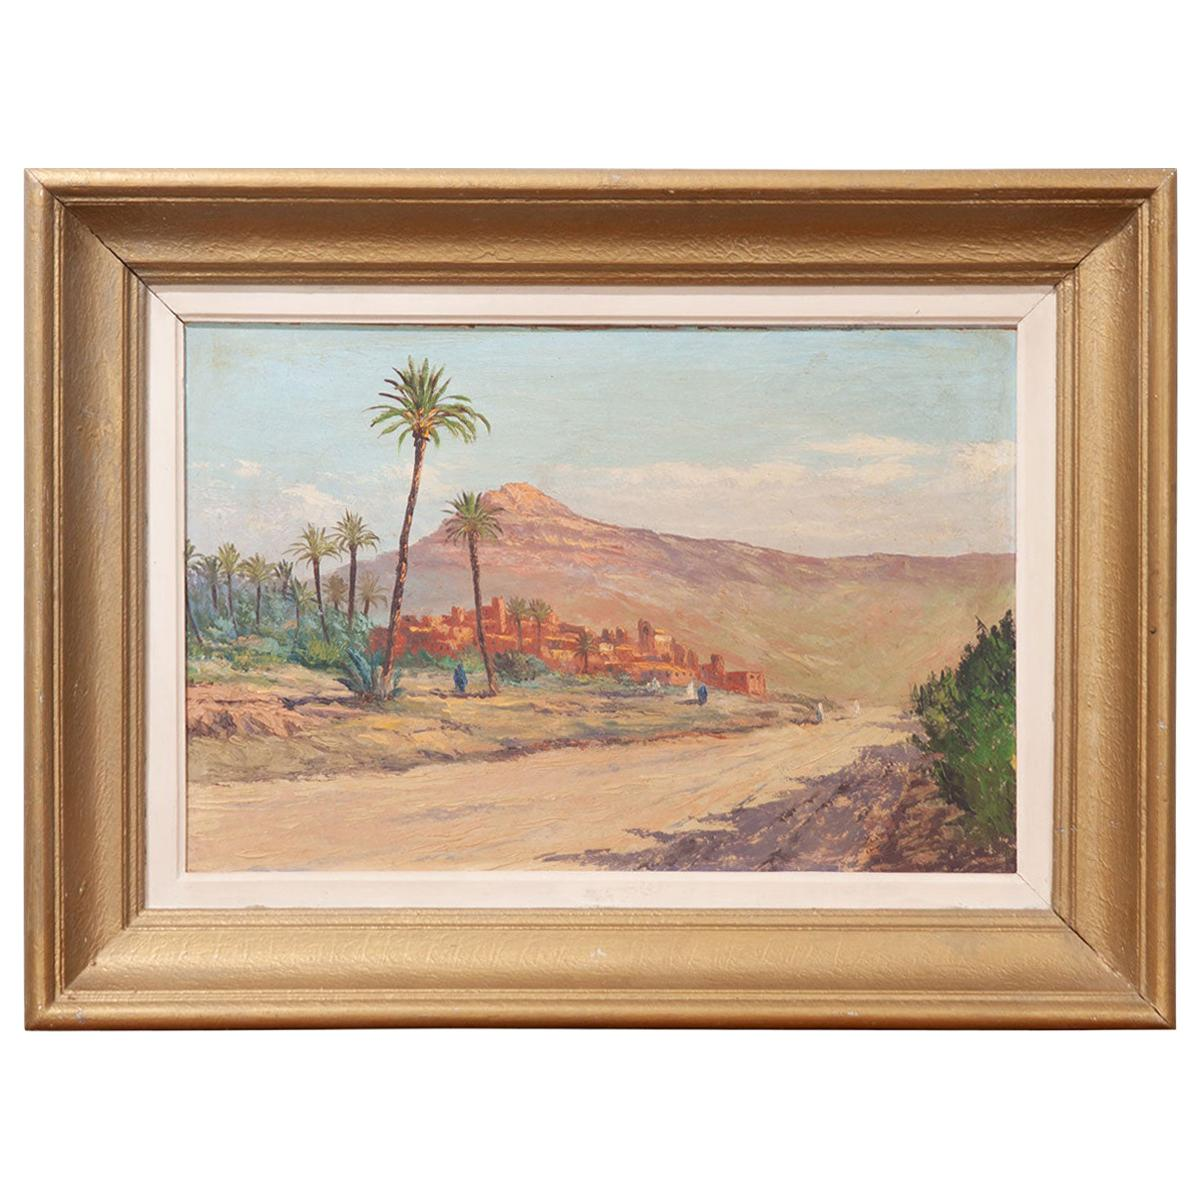 French Vintage Landscape Painting on Board